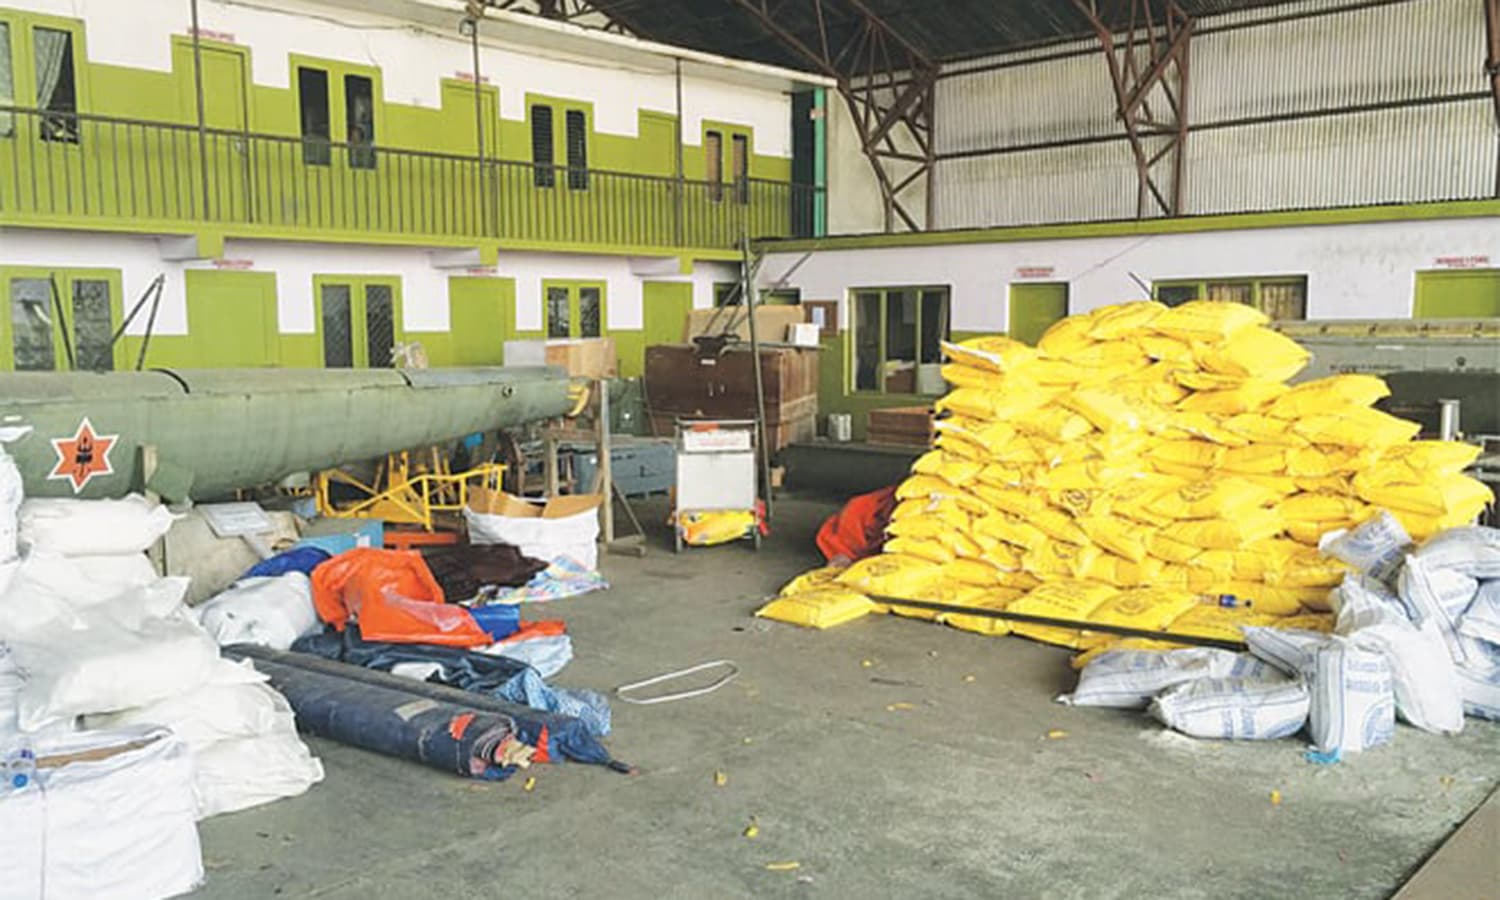 Relief supplies couldn't be choppered out to the rest of country due to an acute shortage of helicopters; by the fifth day of the quake, almost 500 tonnes of aid had been received, but less than 200 tonnes distributed